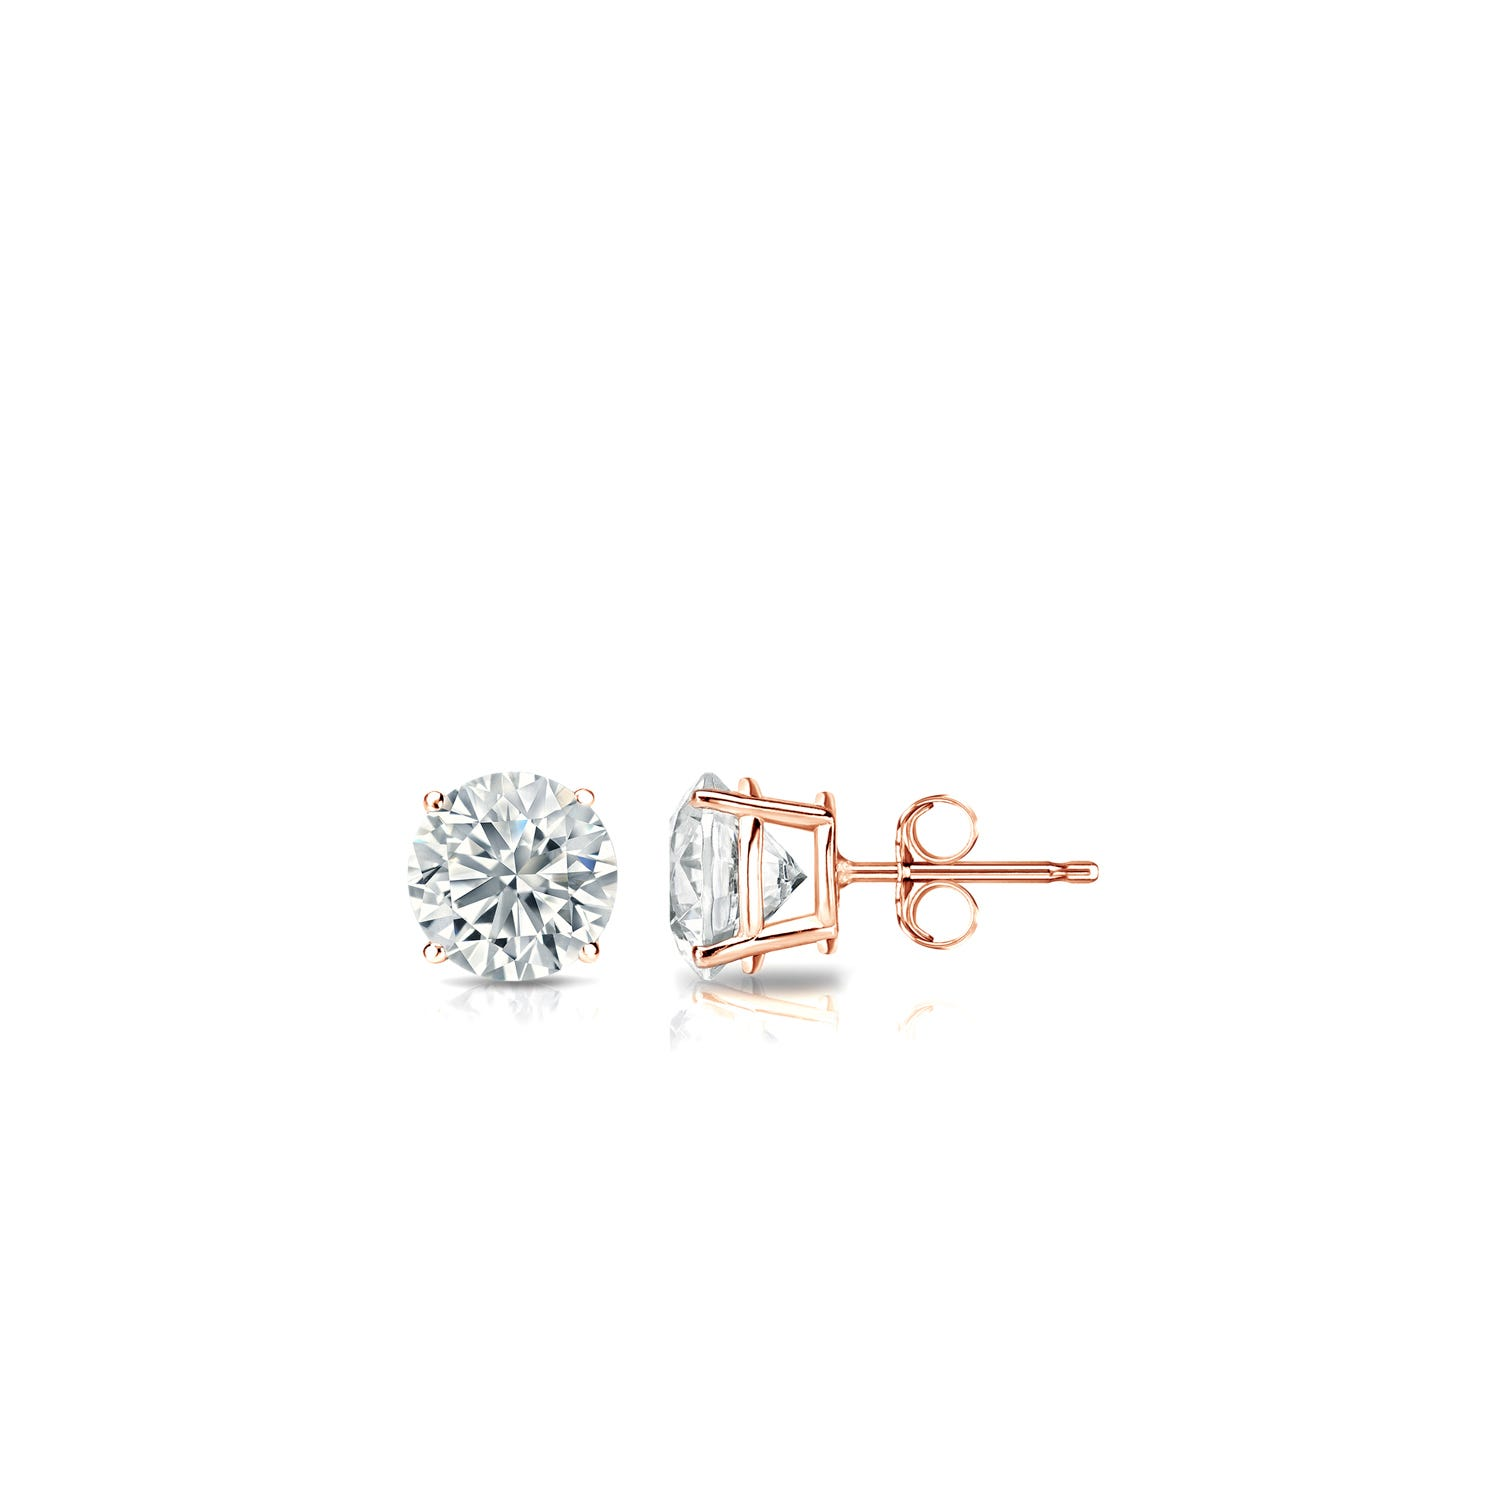 Diamond 1/6ctw. Round Solitaire Stud Earrings. (I-J, I2) 14k Rose Gold